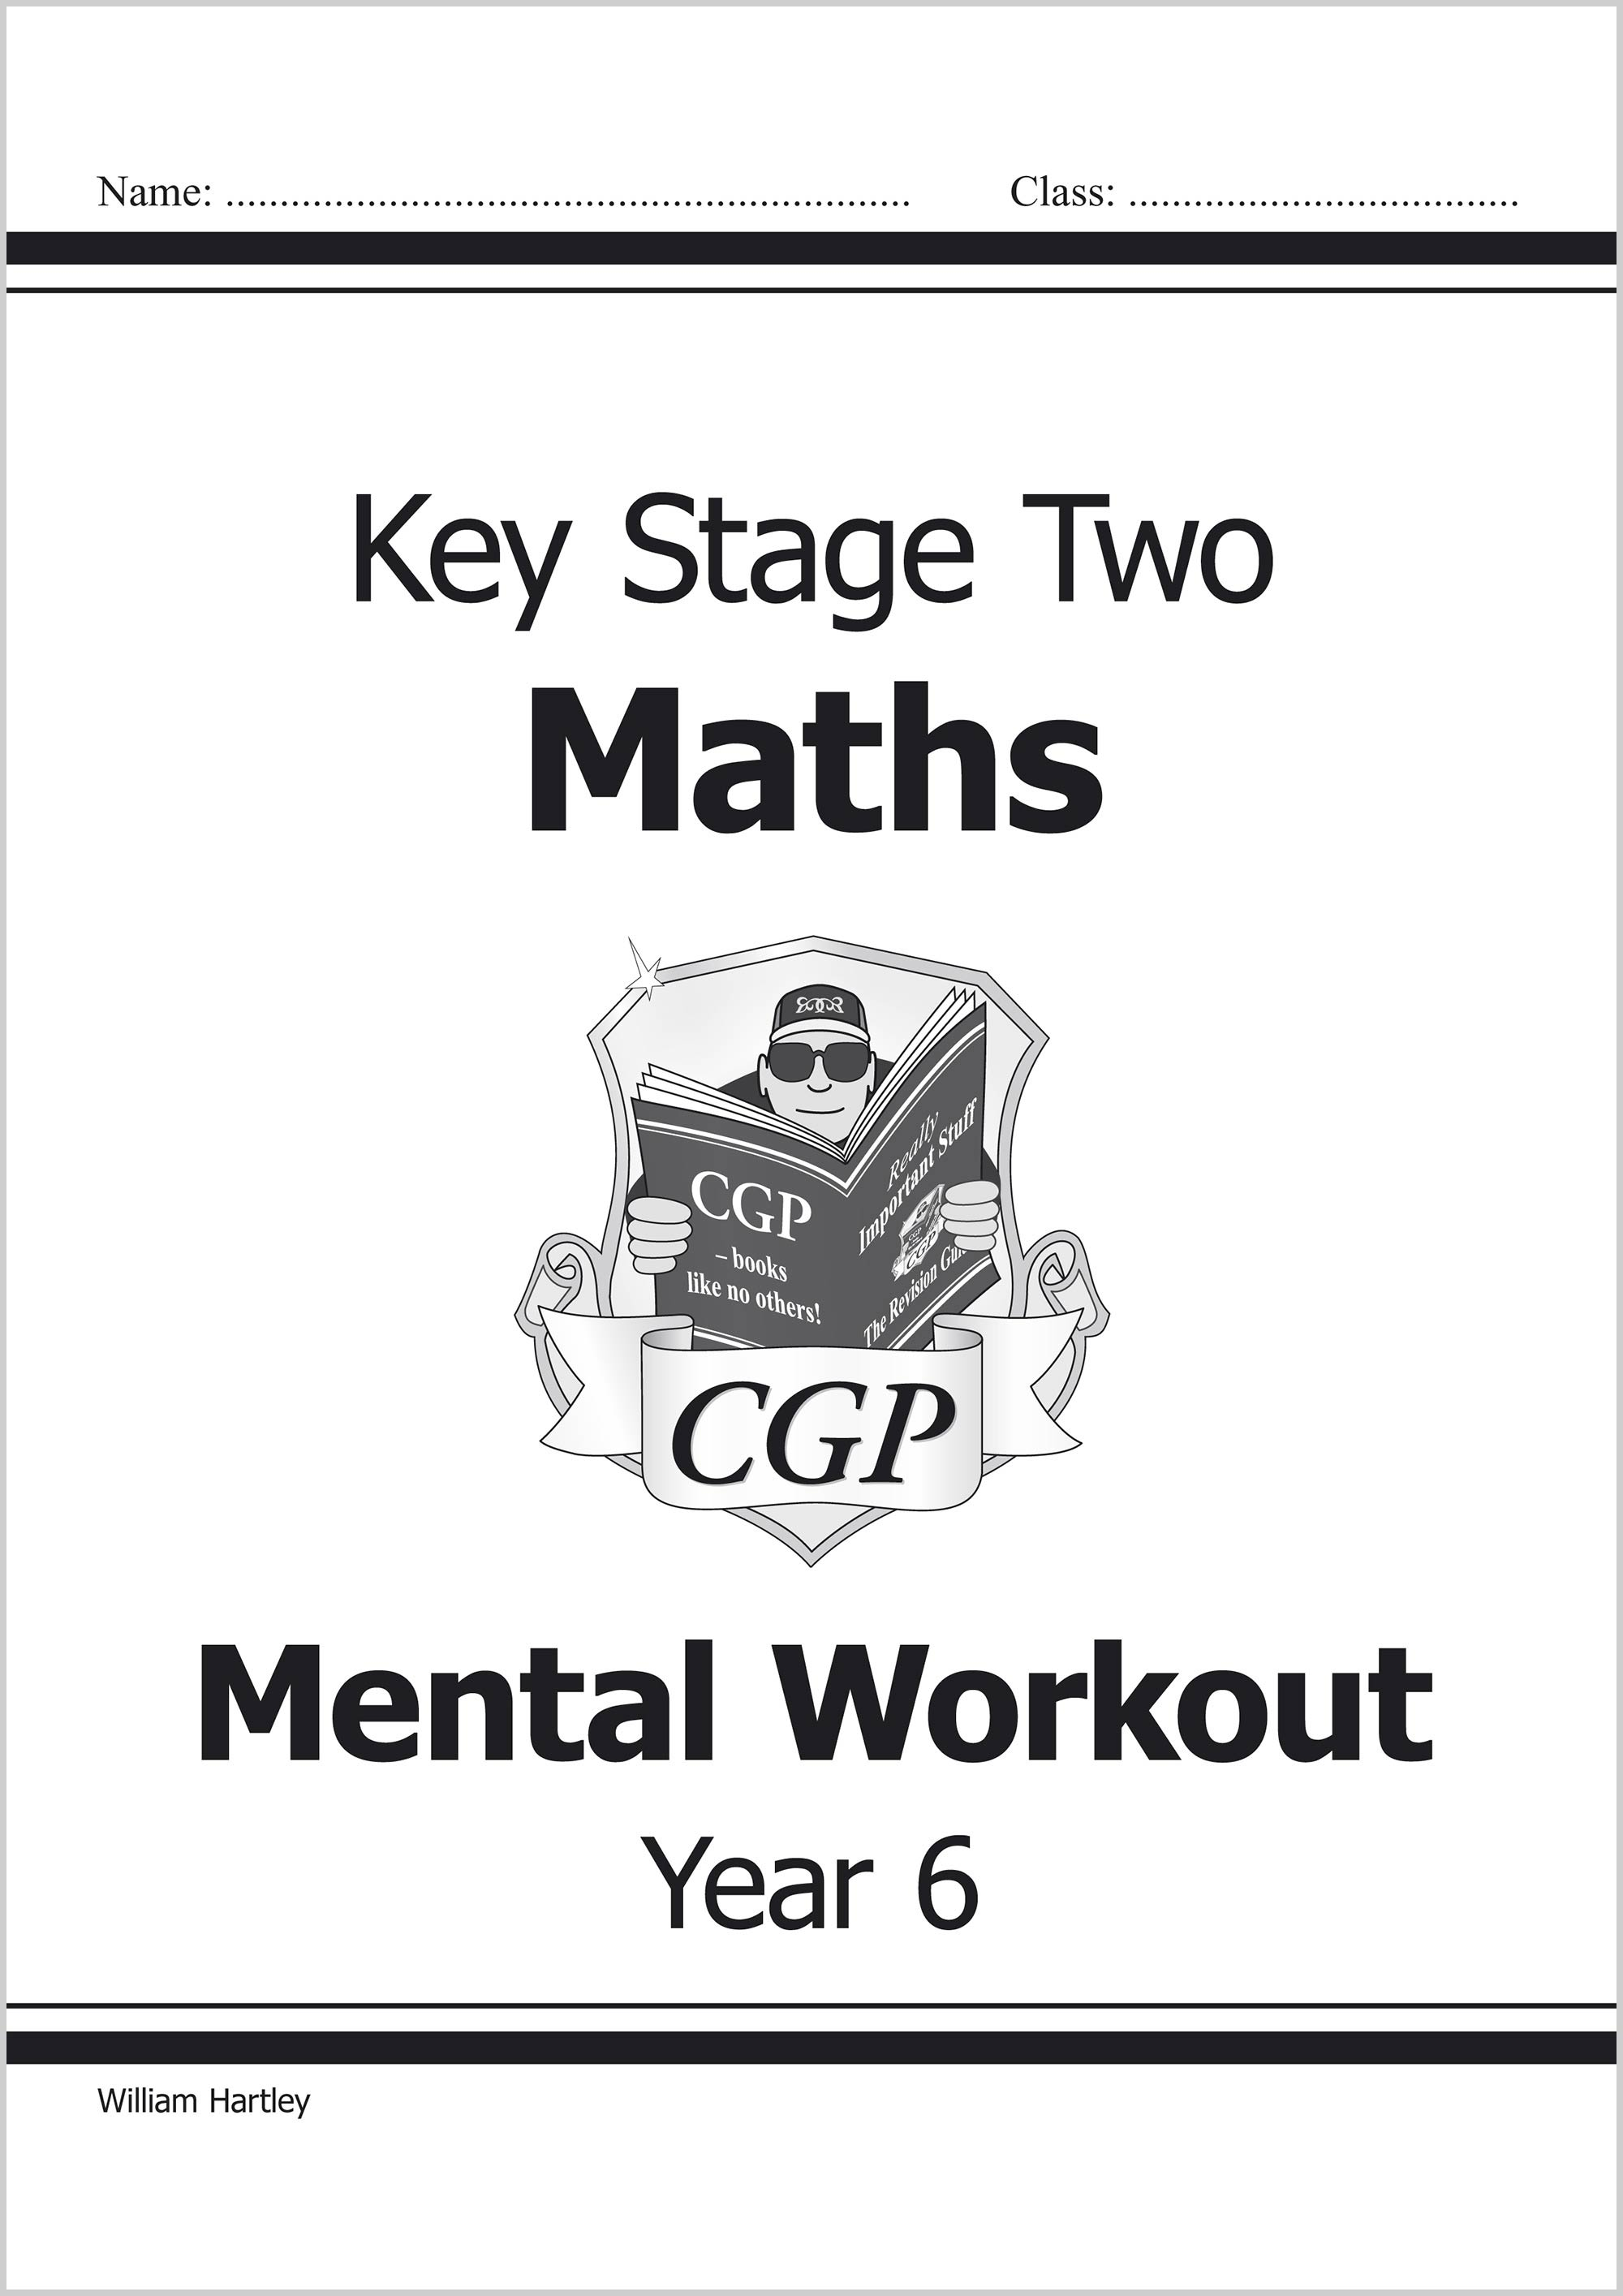 M6MA22 - KS2 Mental Maths Workout - Year 6